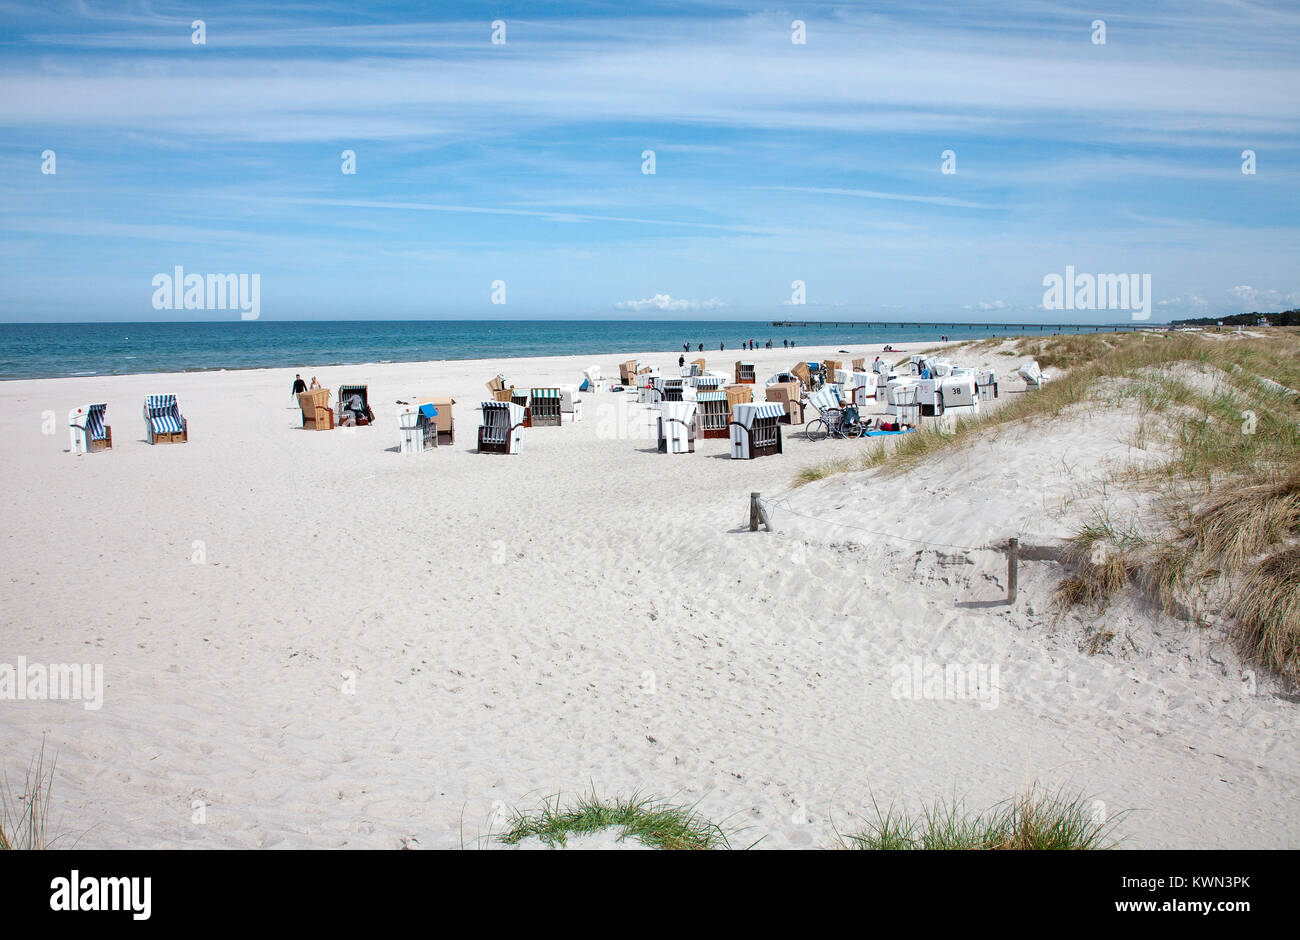 People at the beach of Prerow, Fishland, Mecklenburg-Western Pomerania, Baltic sea, Germany, Europe - Stock Image